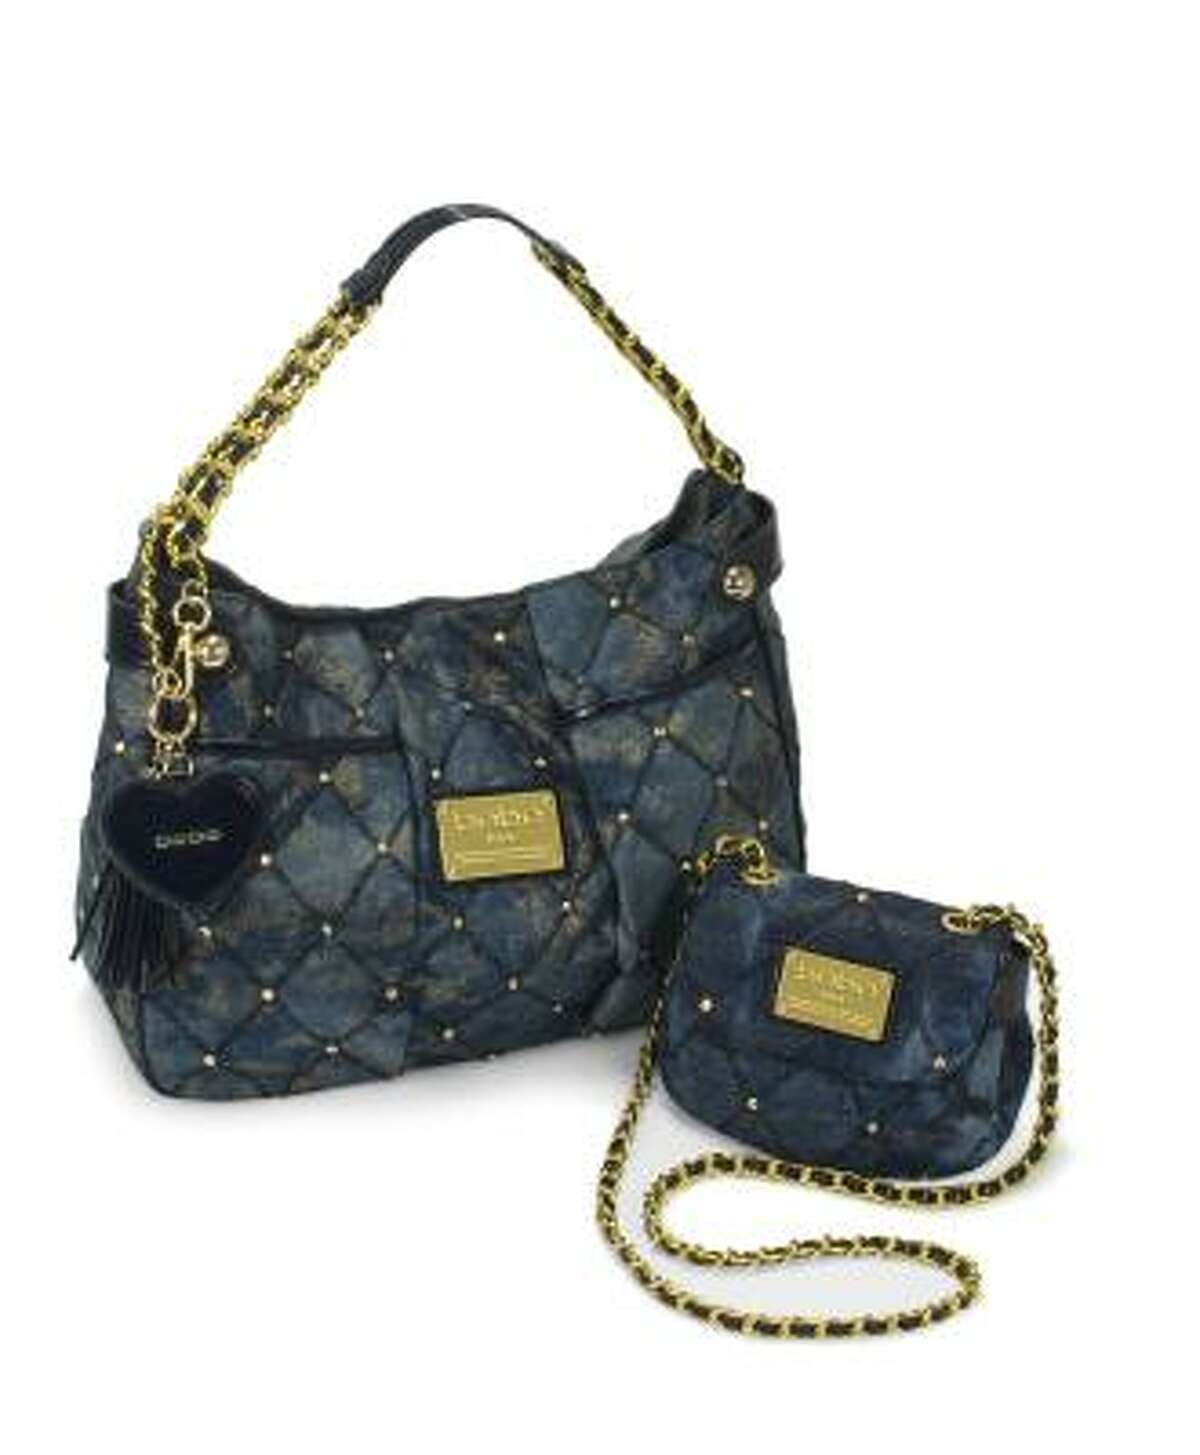 Bebe offers a collection of denim handbags for spring.